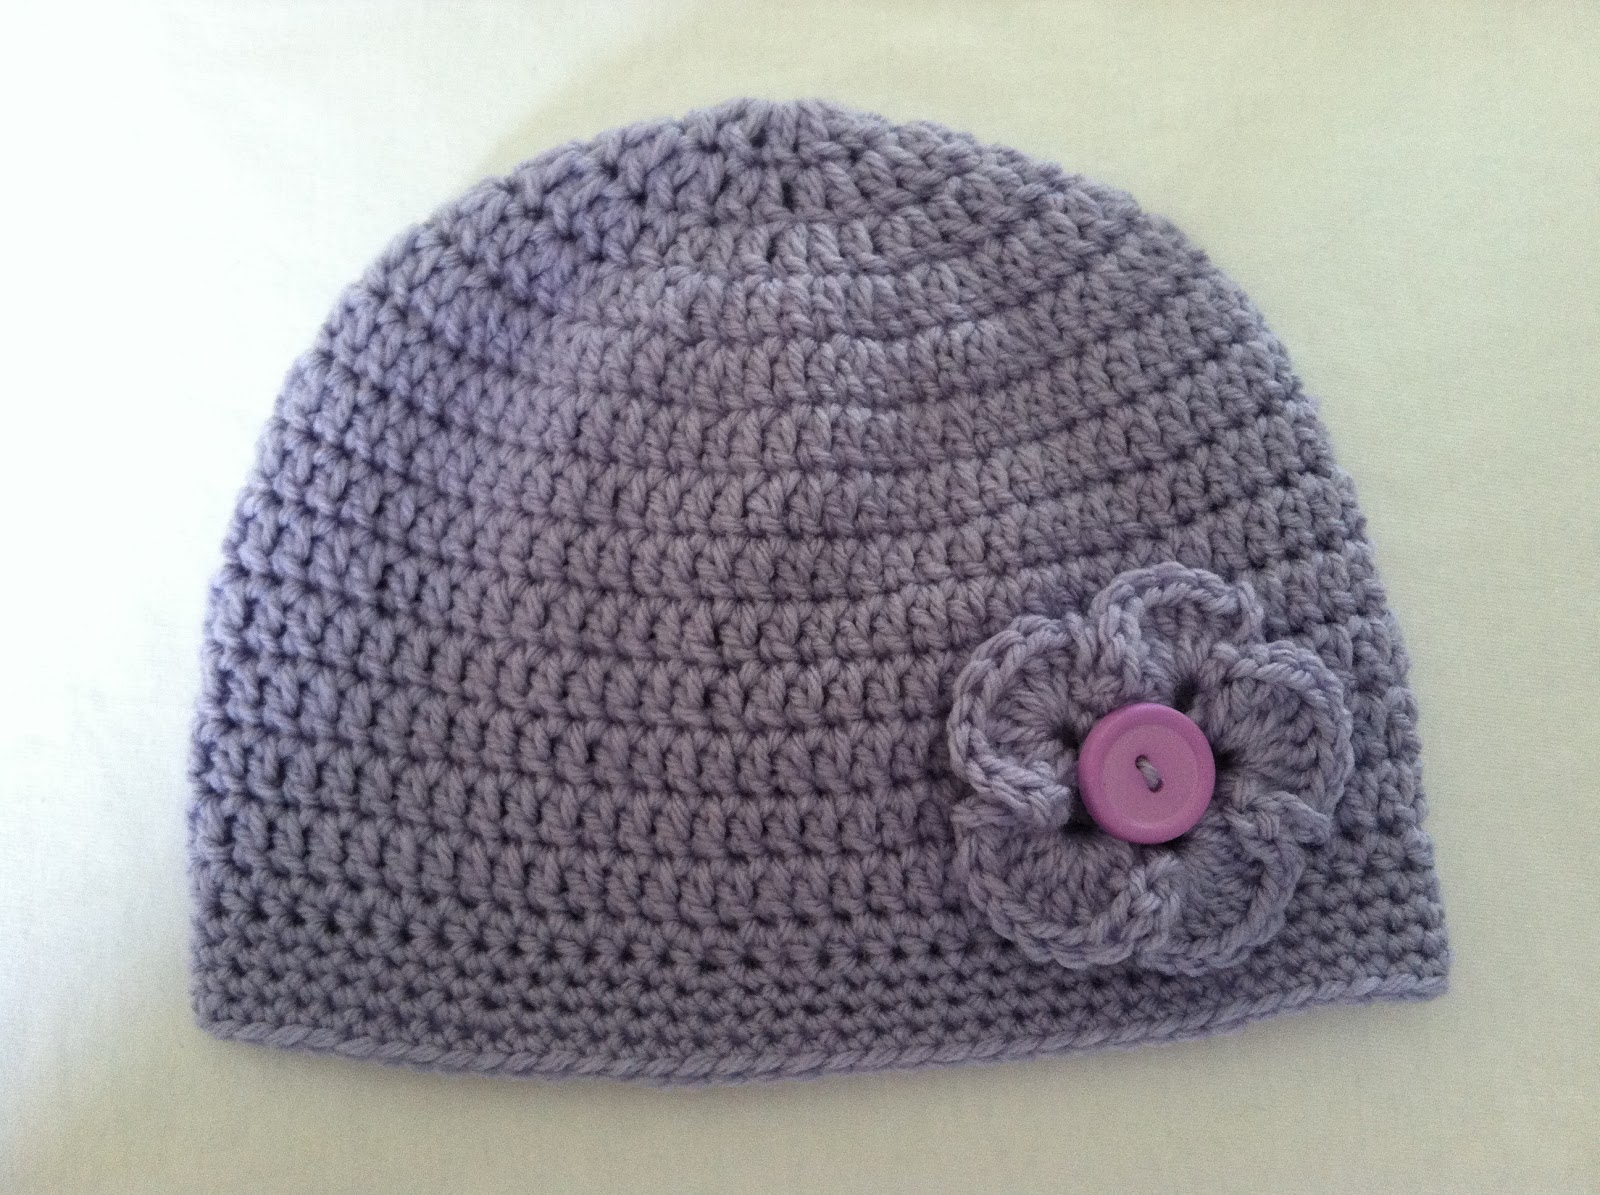 Free Crochet Pattern For Chemo Cap Original Patterns